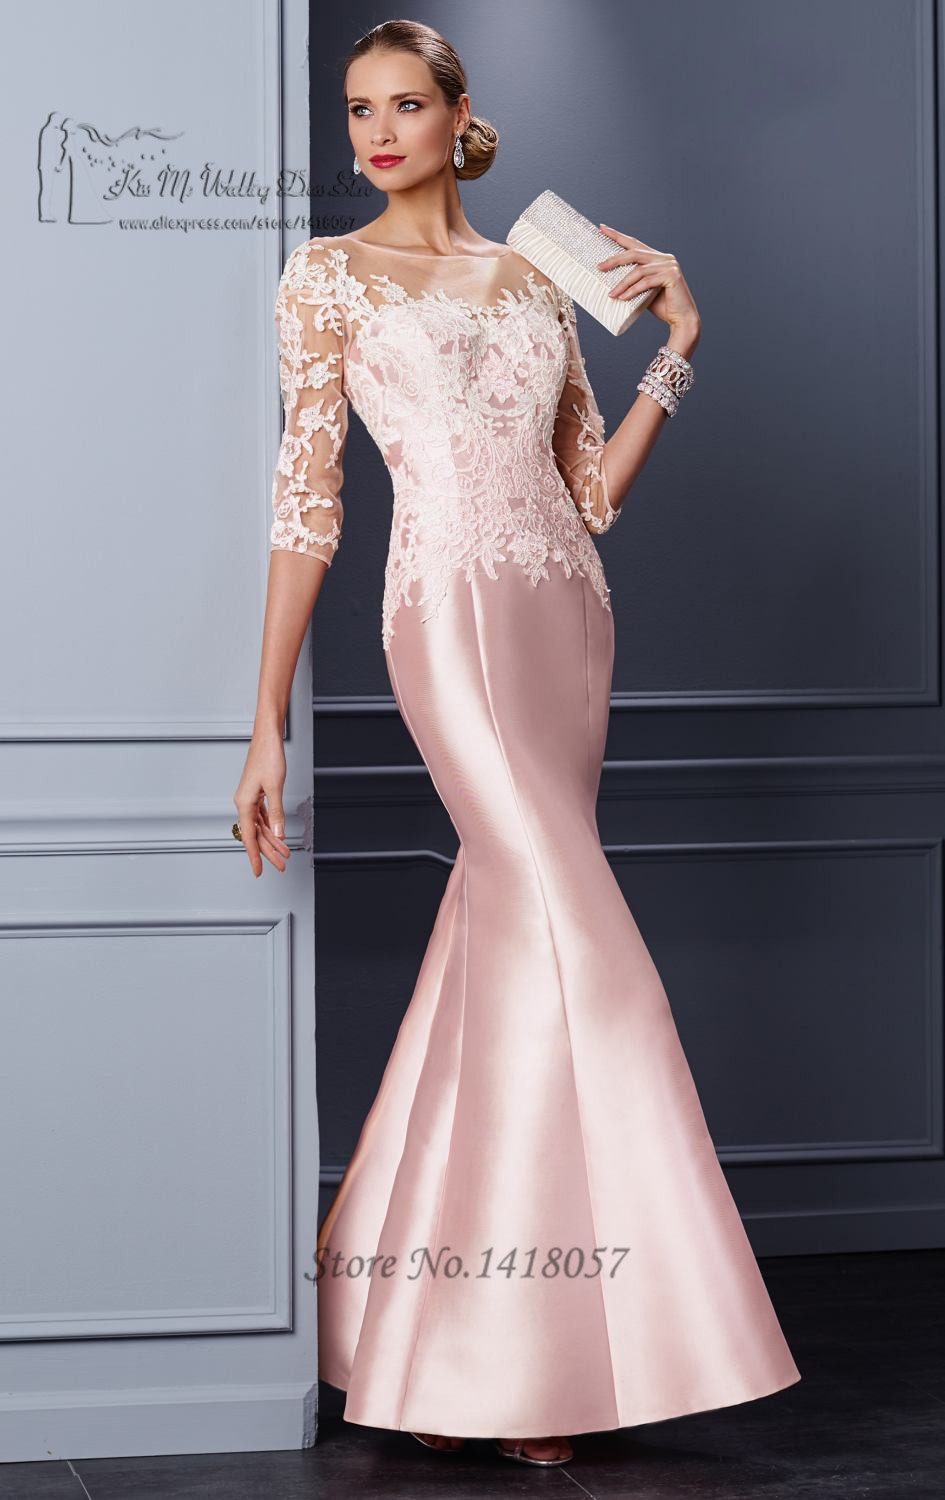 Mother of the bride formal evening dresses cheap wedding for How to dress for an evening wedding